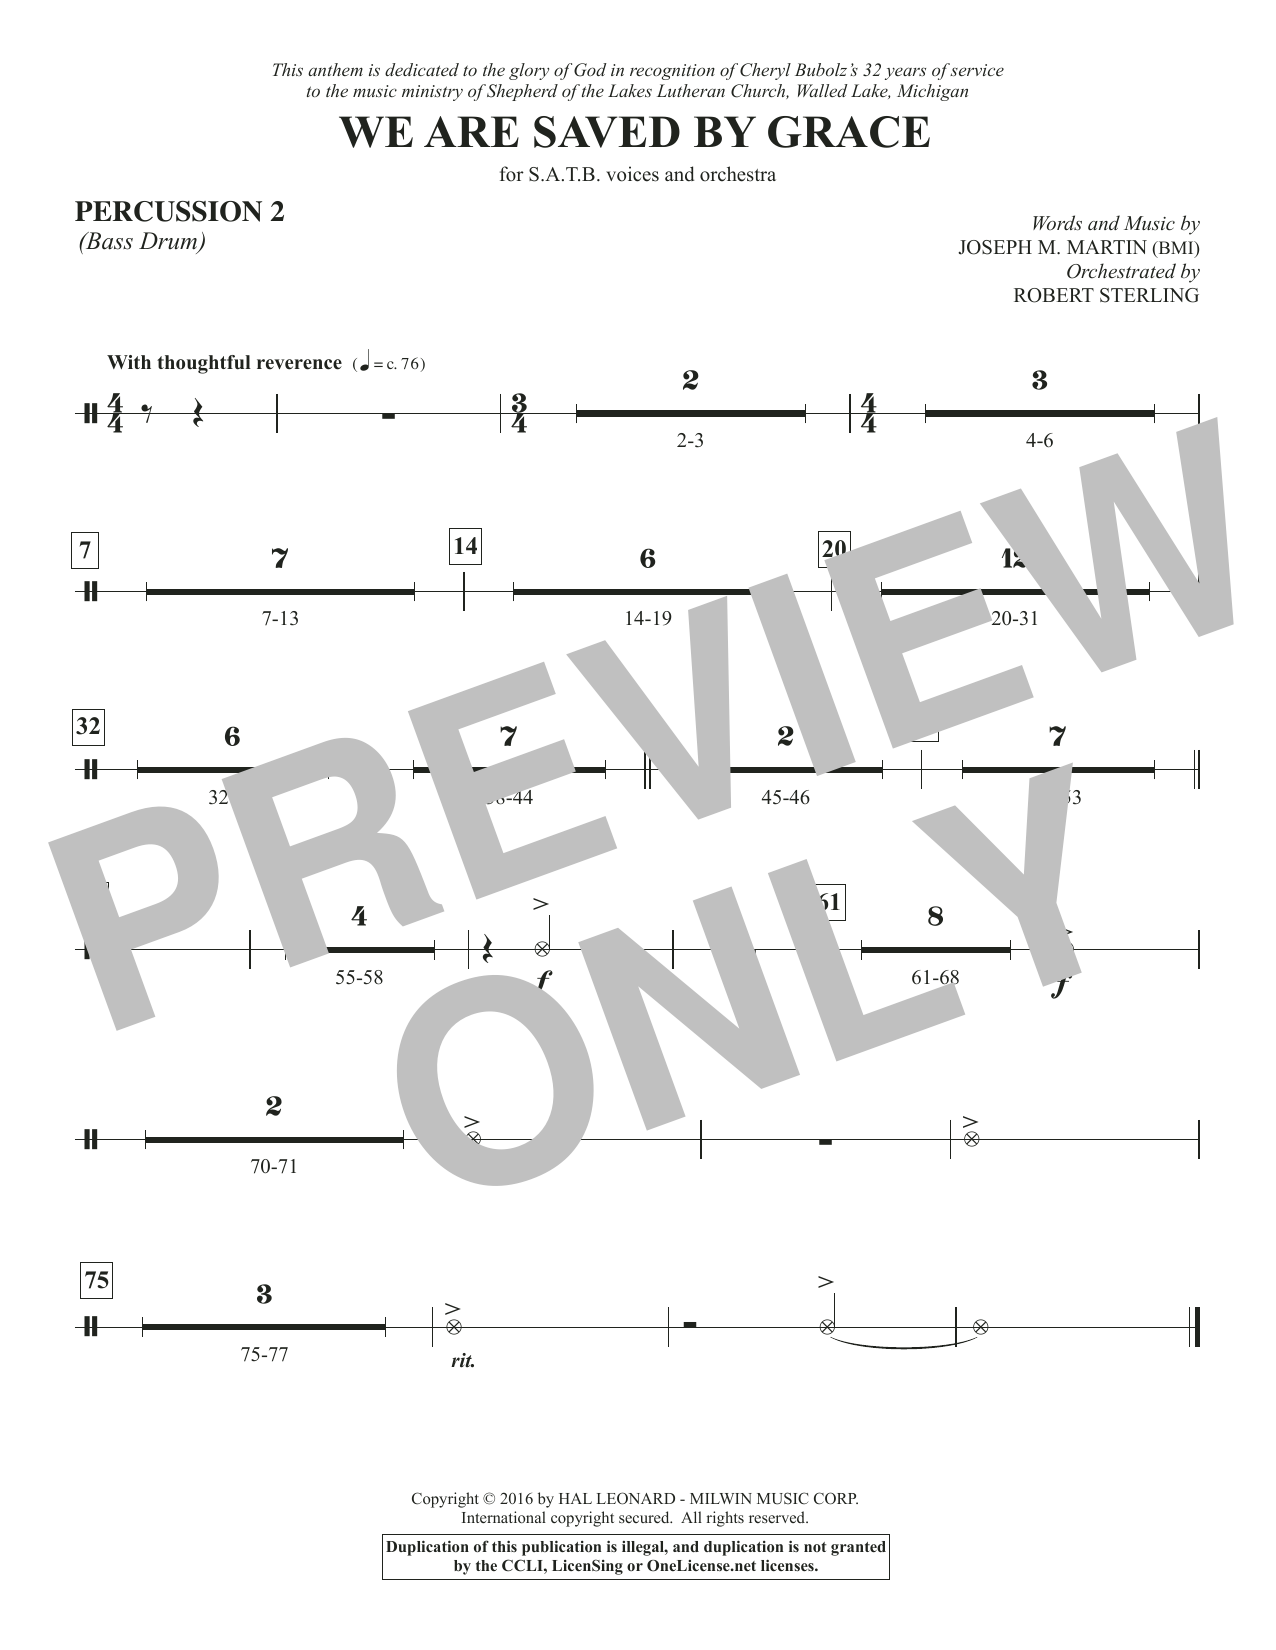 We Are Saved by Grace - Percussion 2 Sheet Music